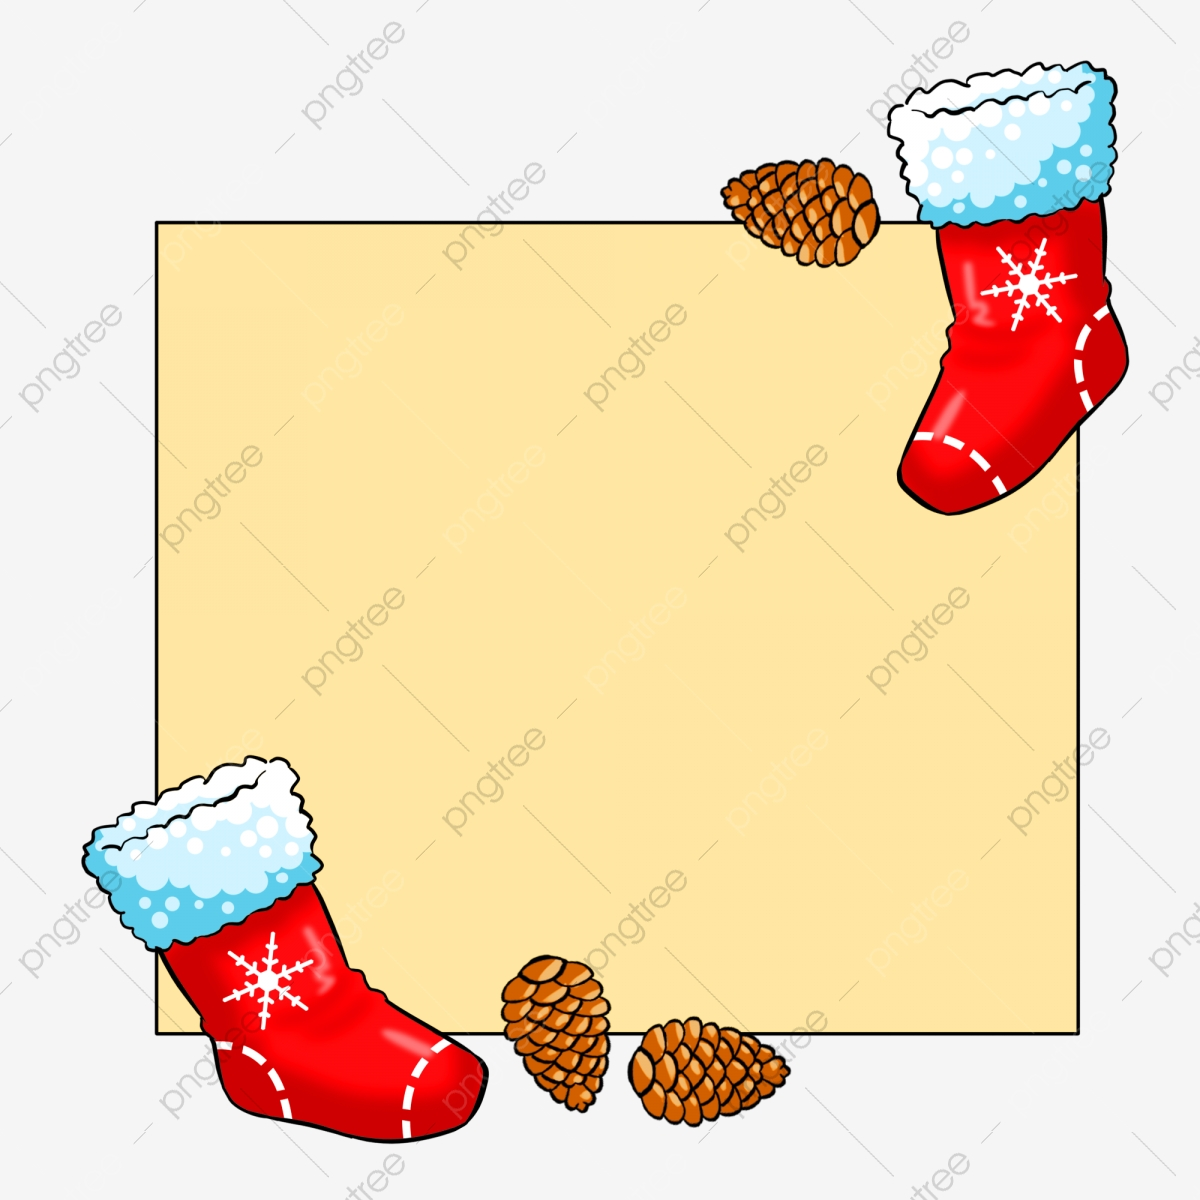 Nuts clipart border. Red sock gourmet pine